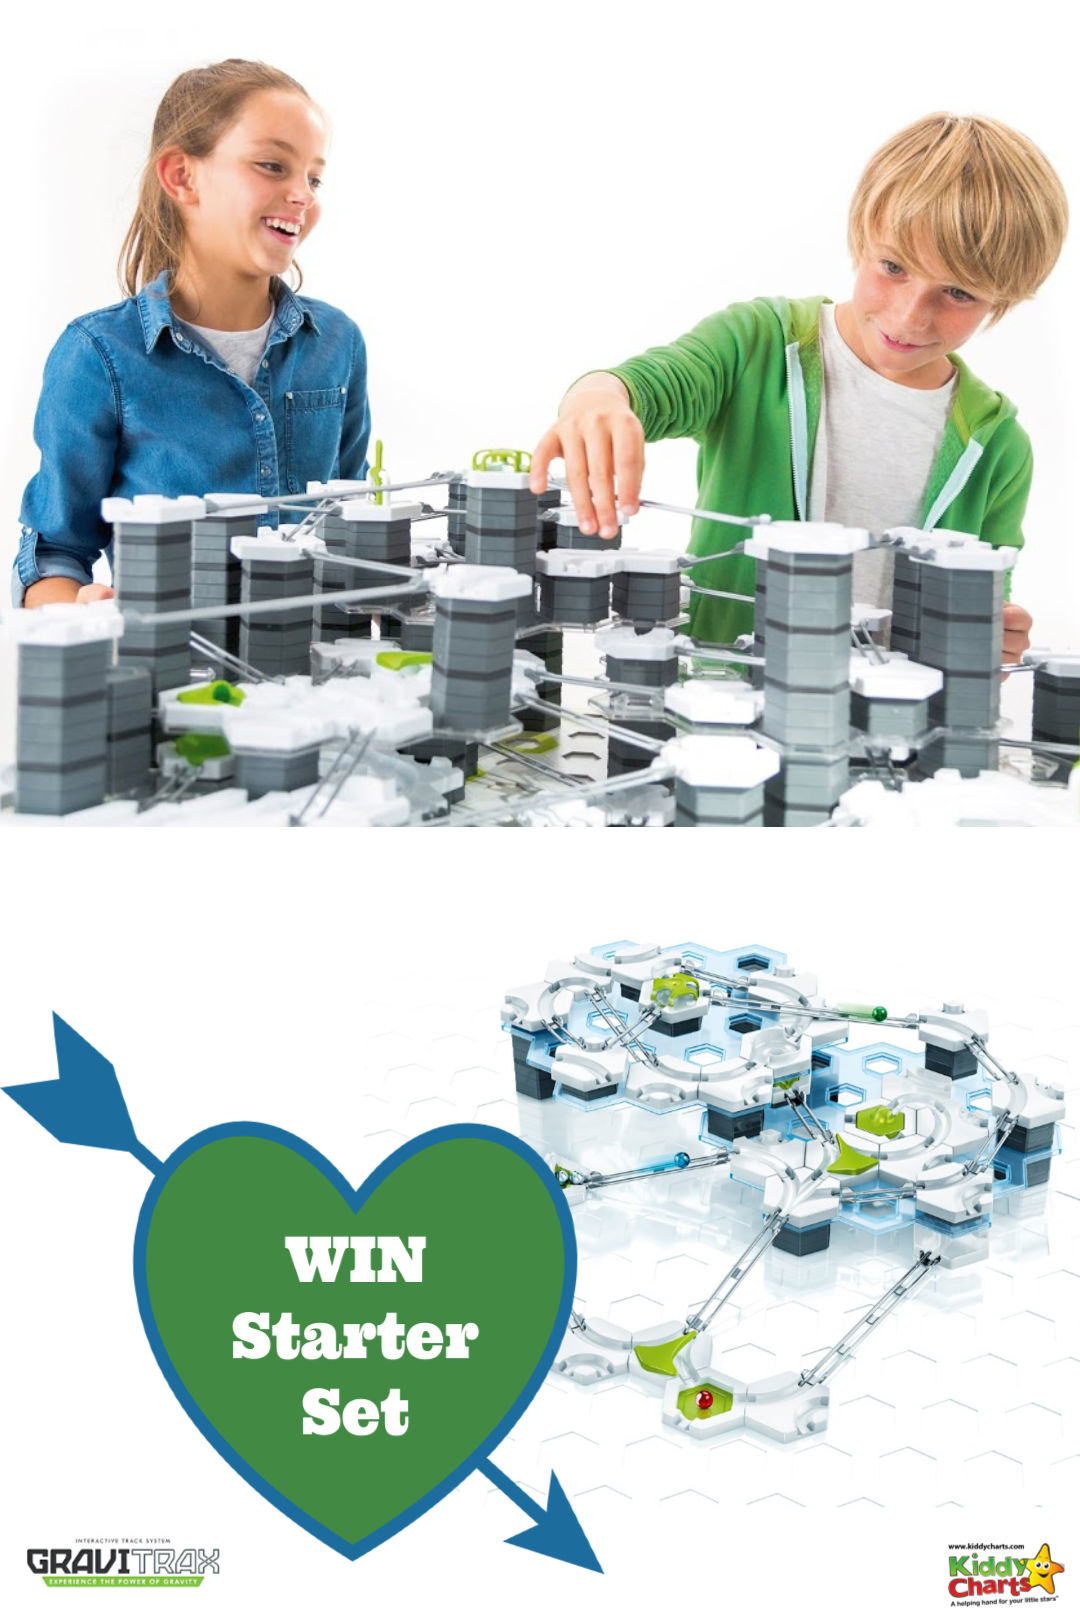 Win a Gravitrax Starter Set - the perfect STEM gift for the kids! #STEMToys #STEM #Gifts